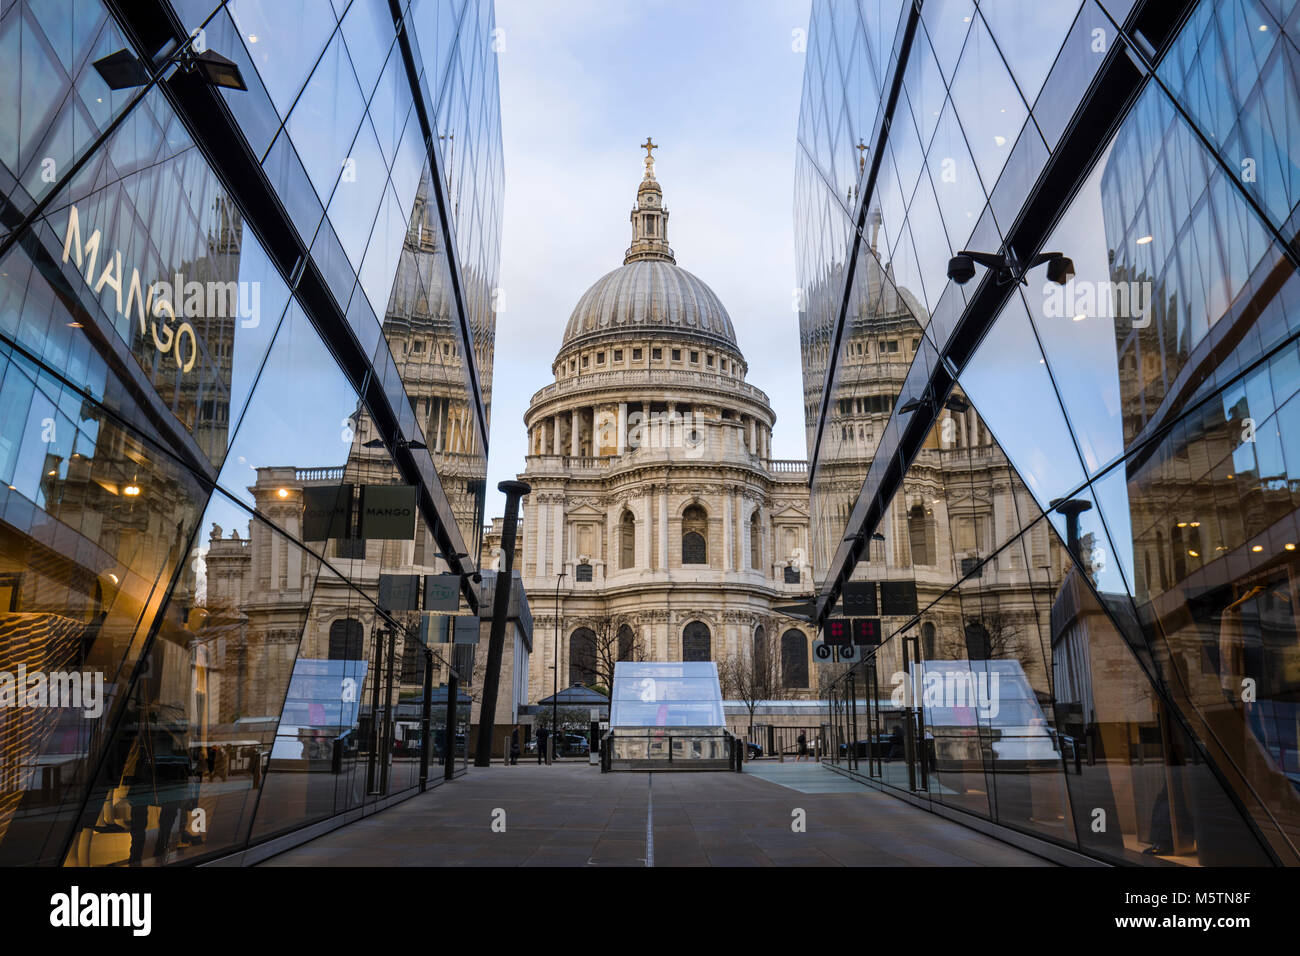 St Paul's Cathedral reflections in the glass windows of One New Change shopping centre - Stock Image